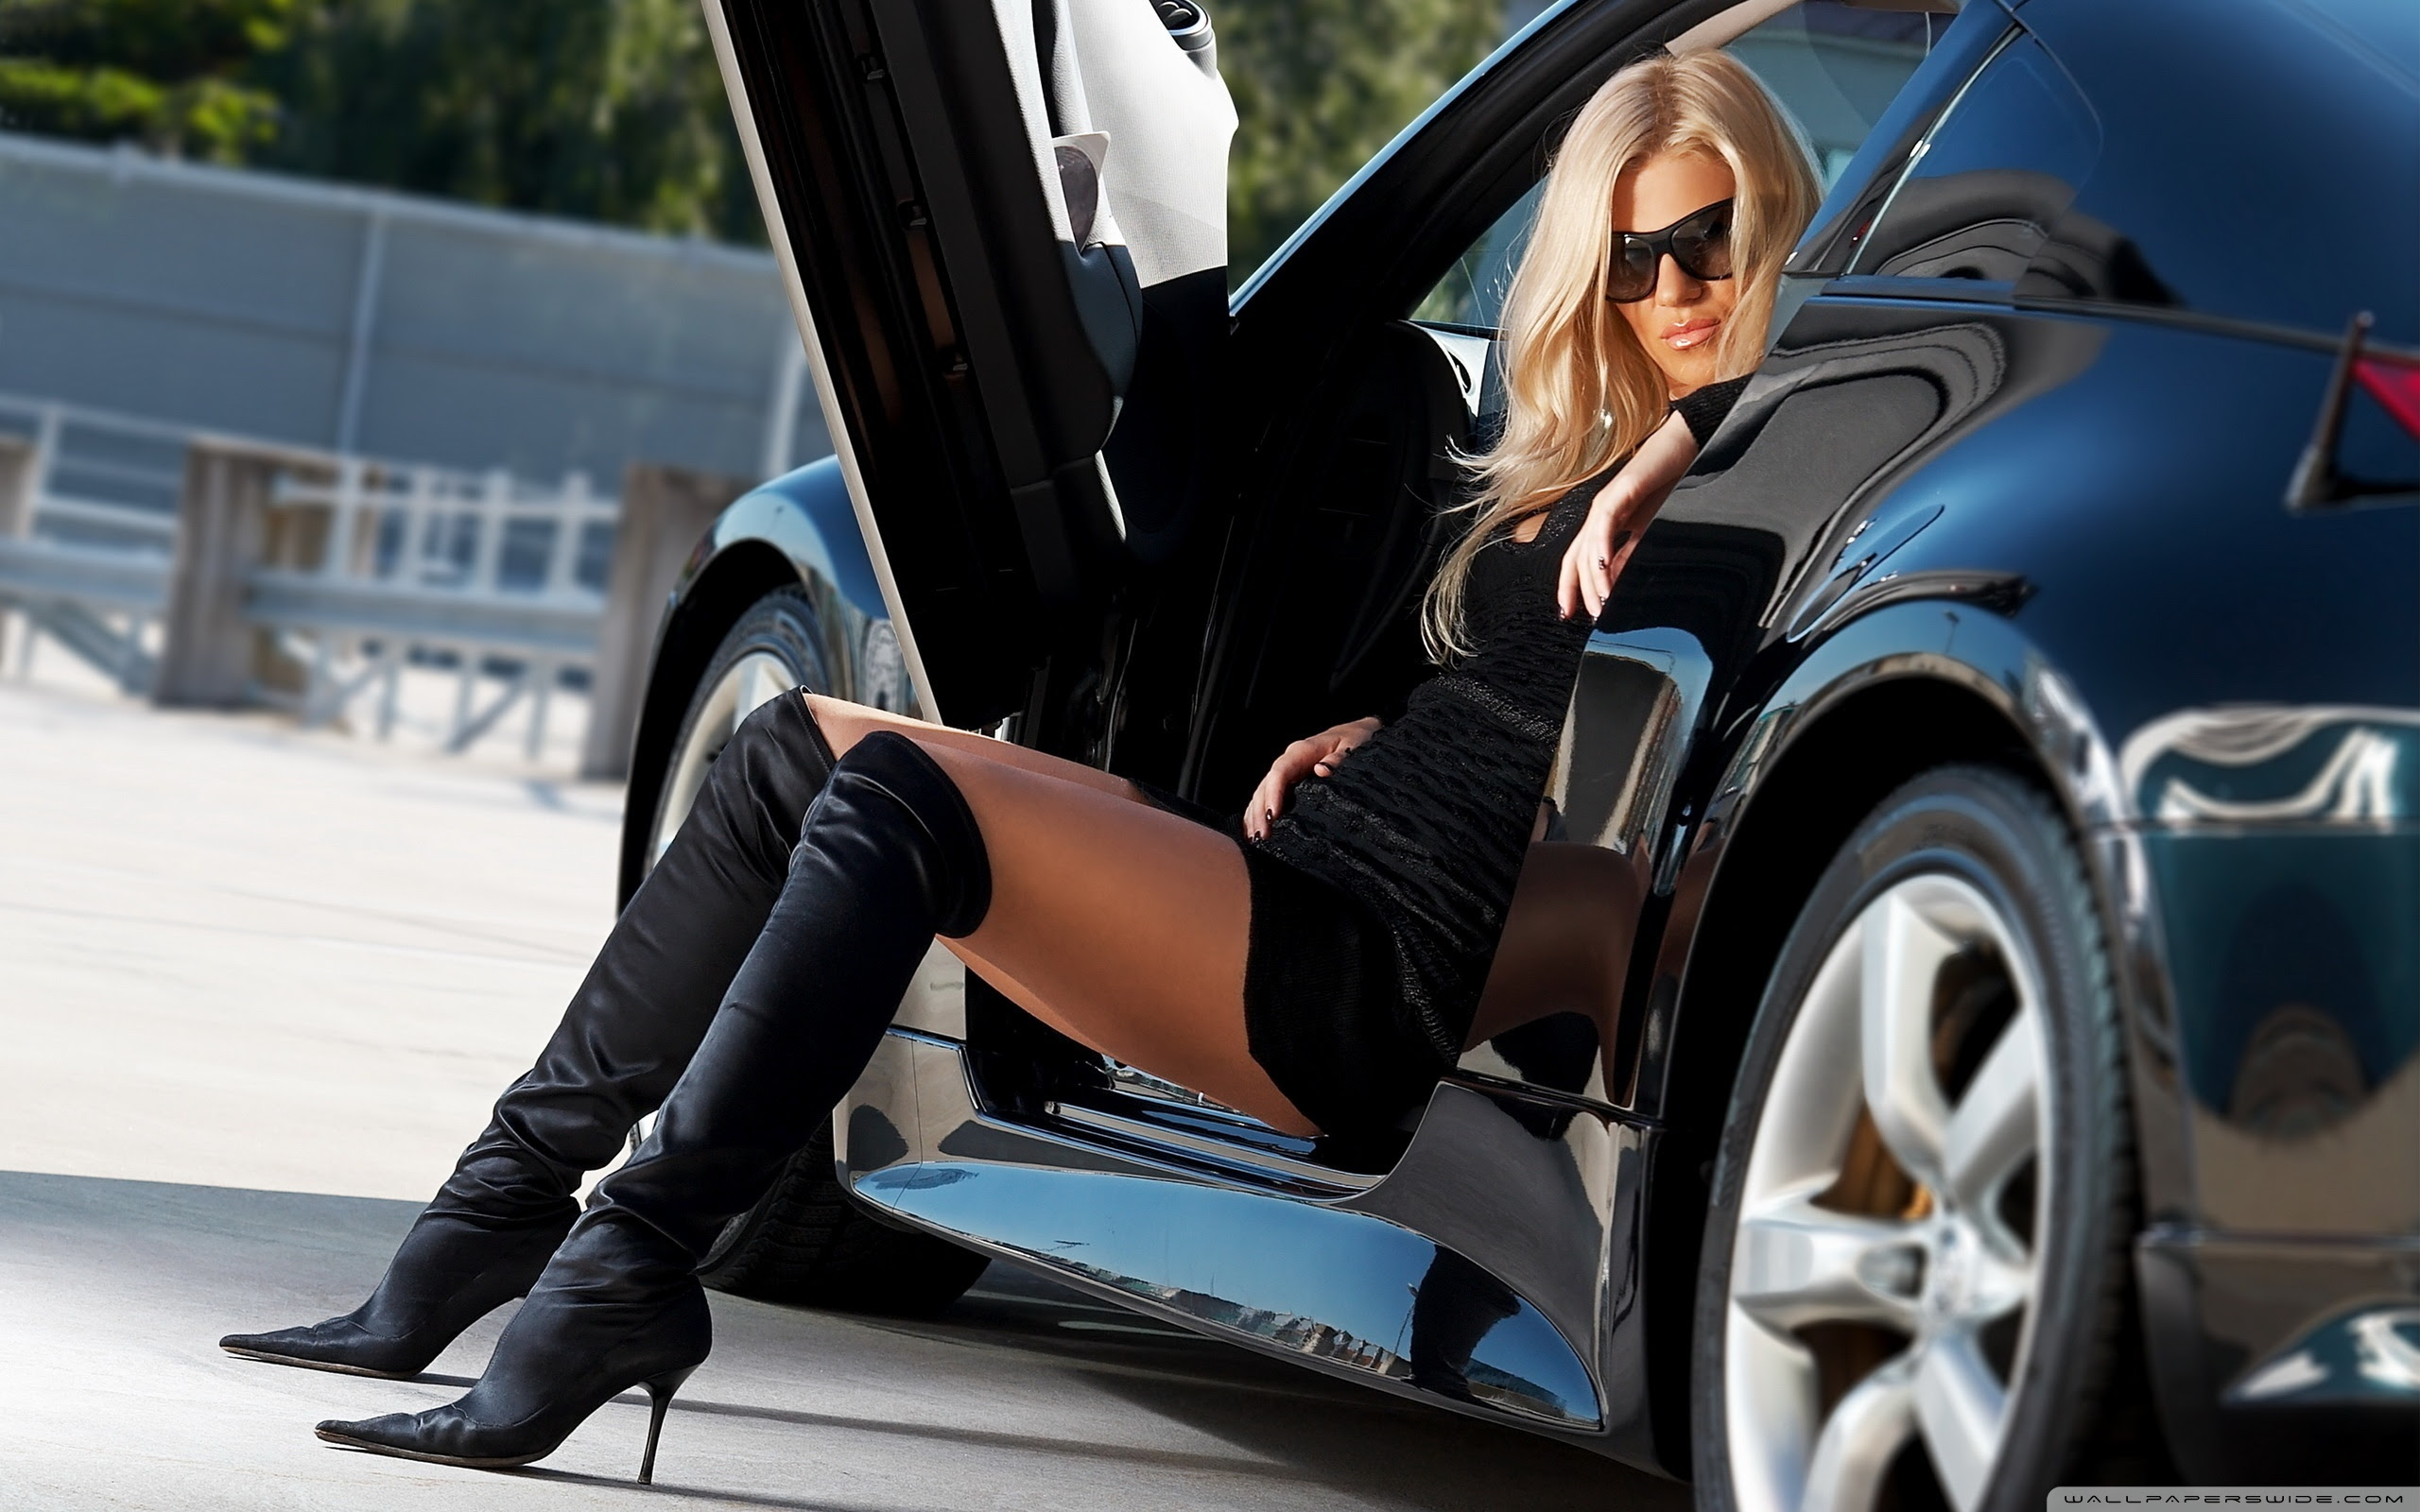 Sexy Girl And Car Ultra Hd Desktop Background Wallpaper For